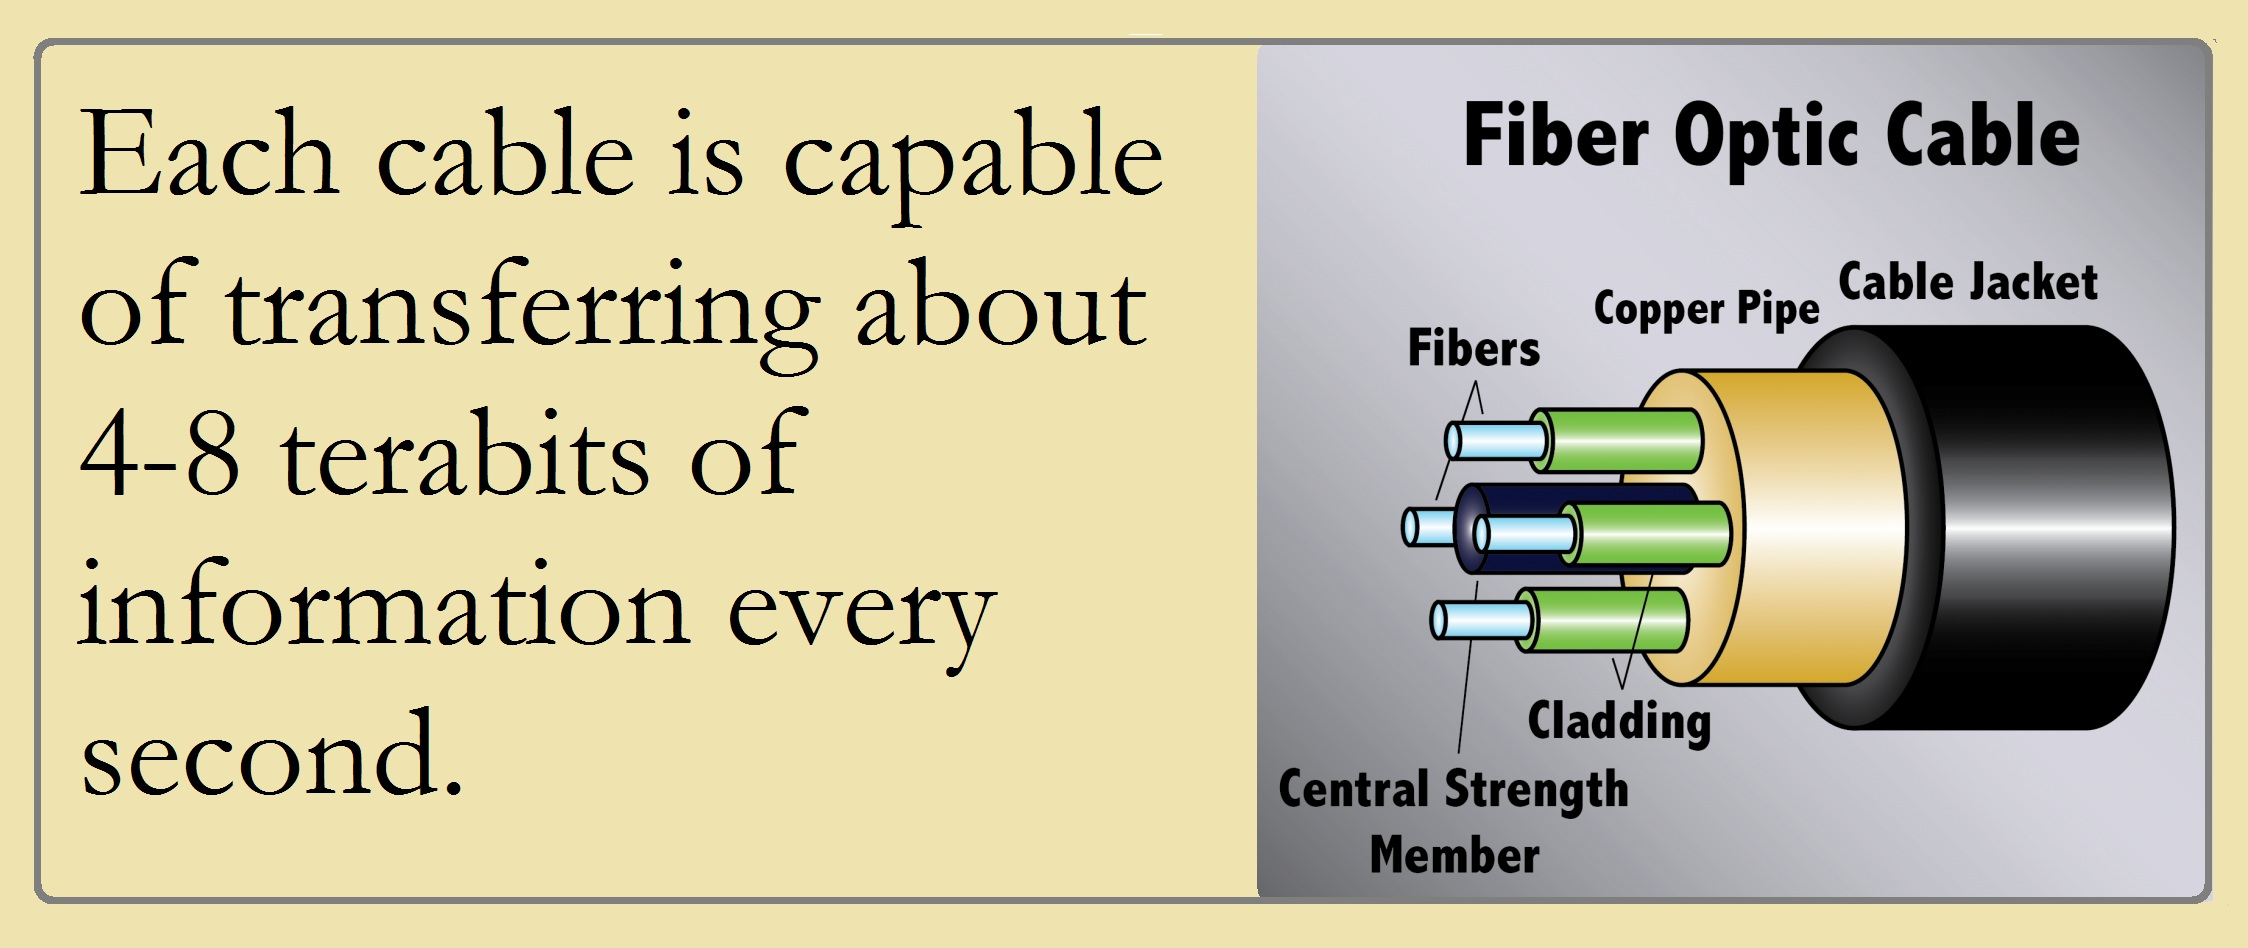 Fiber optic Cable capable